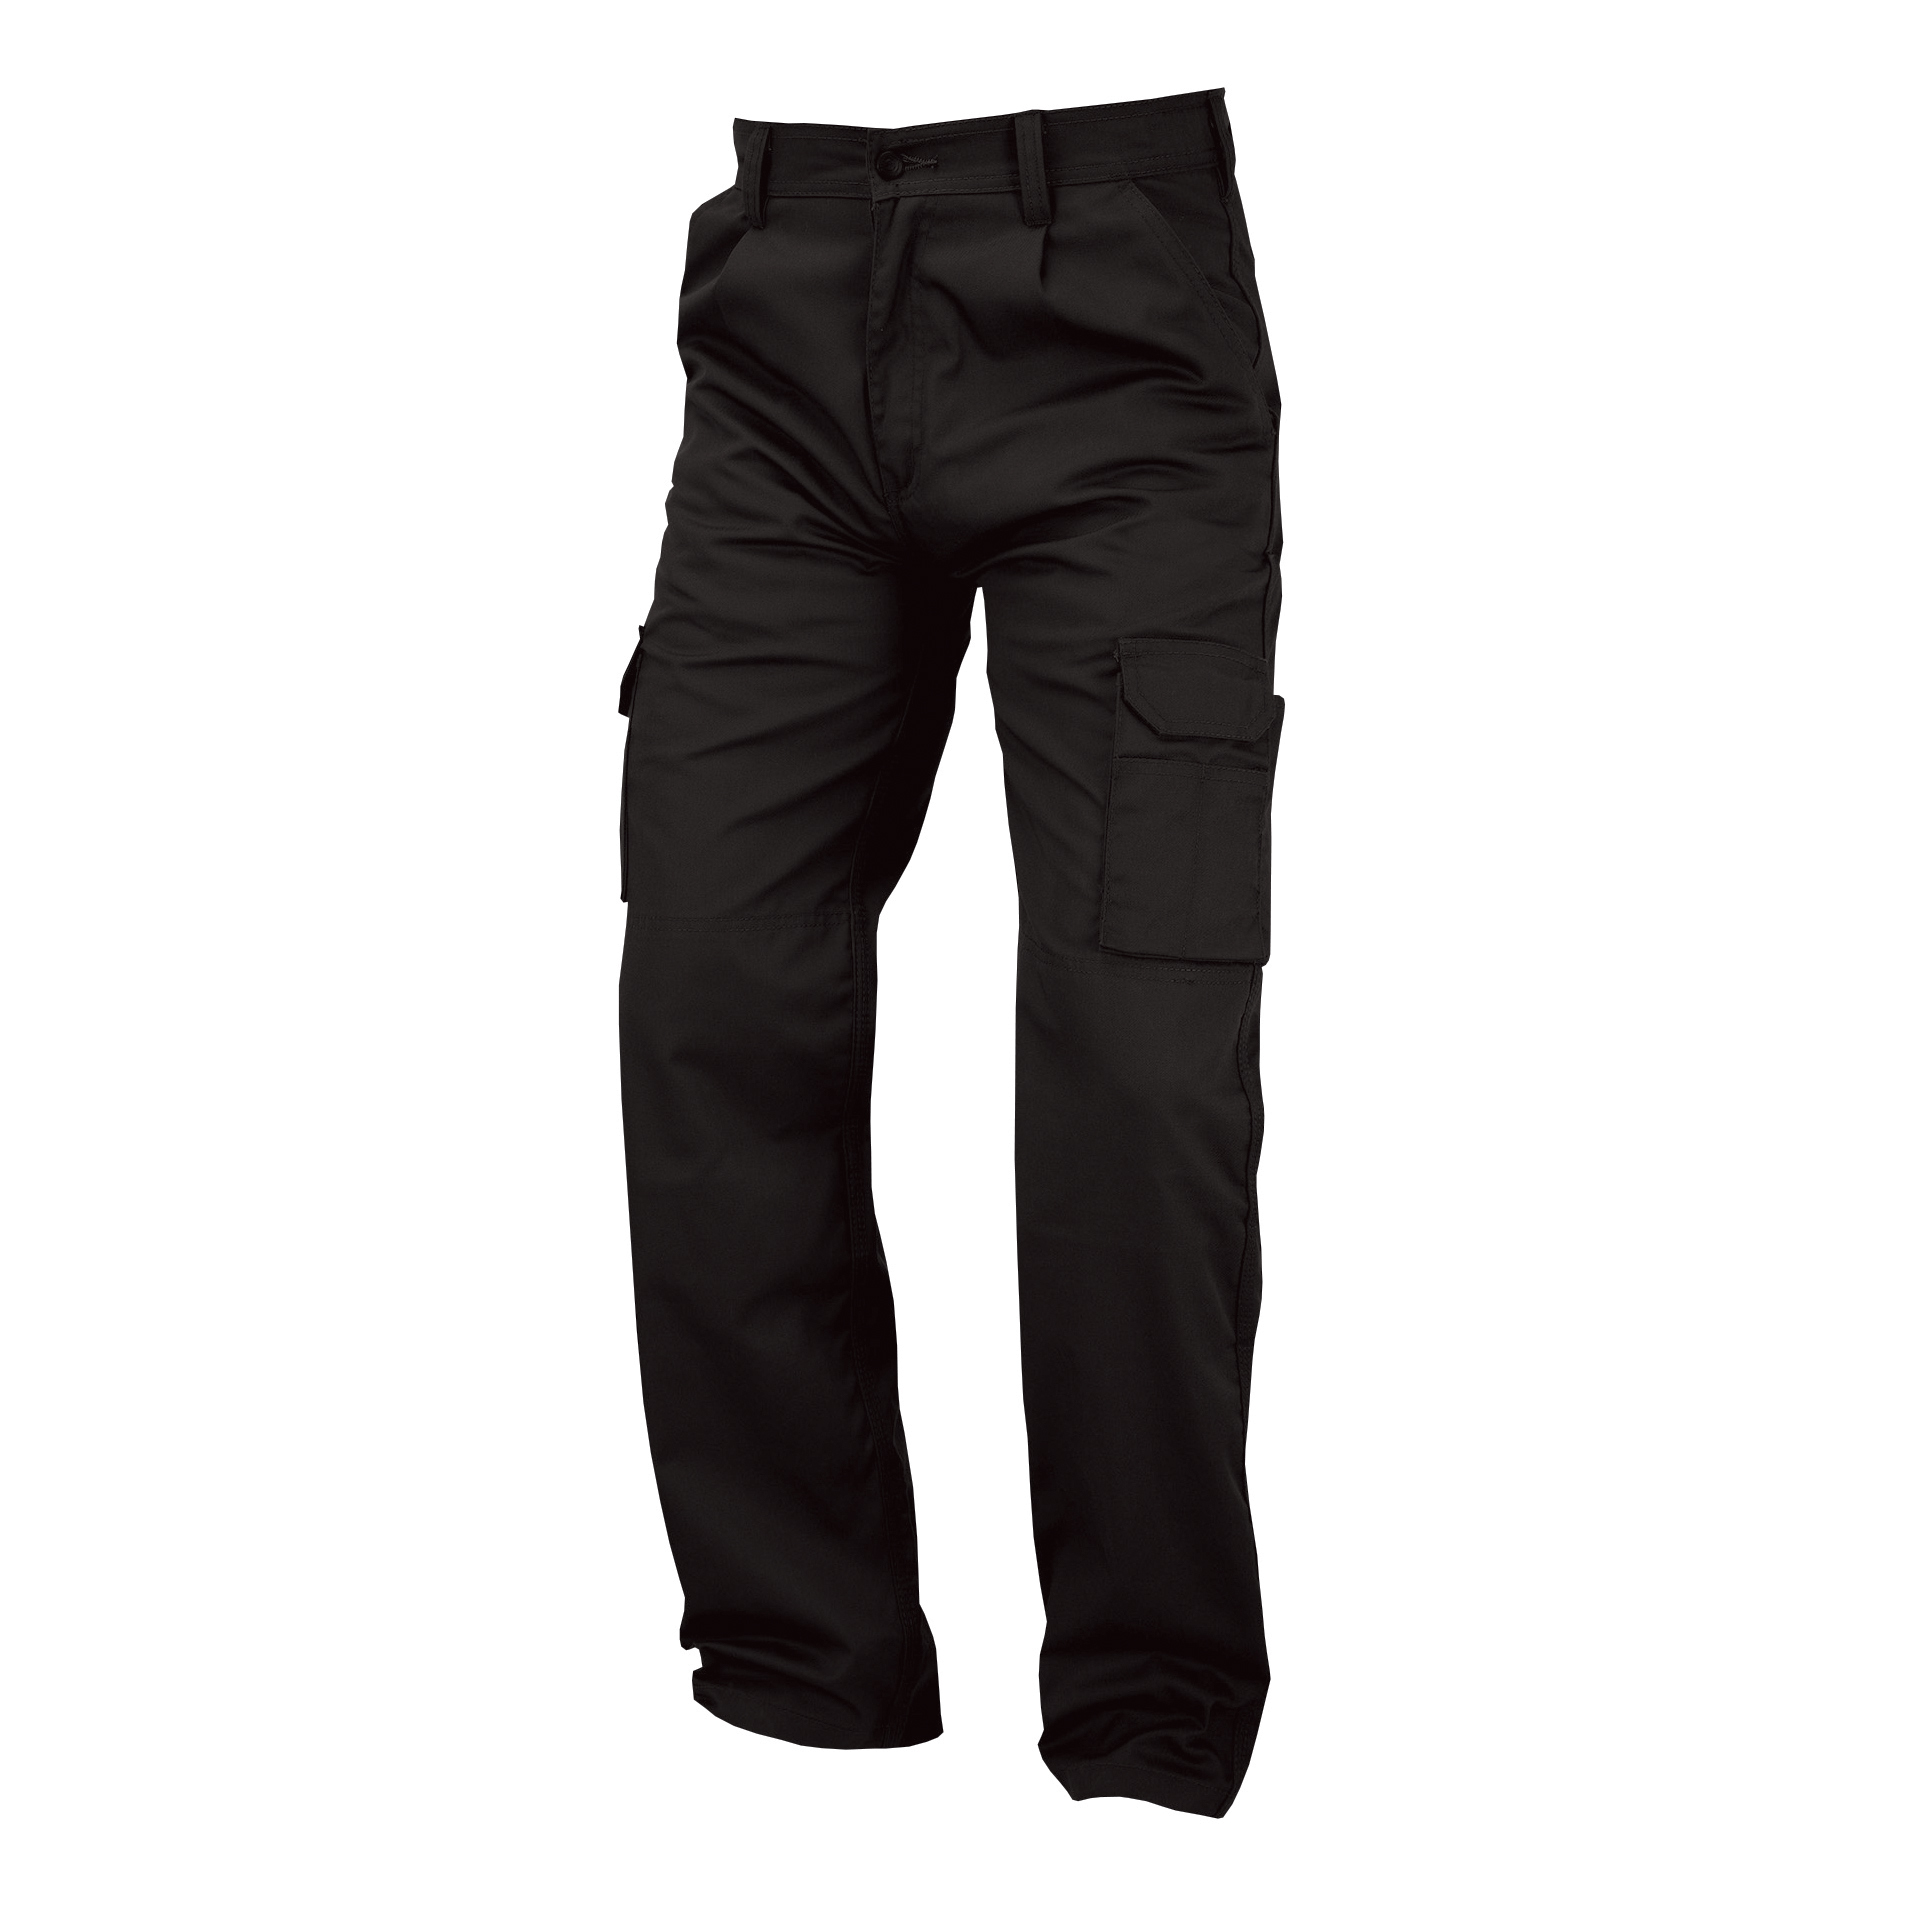 Combat / Cargo Combat Trousers Polycotton with Pockets Size 34in Long Black Ref PCTHWBL34T *1-3 Days Lead Time*